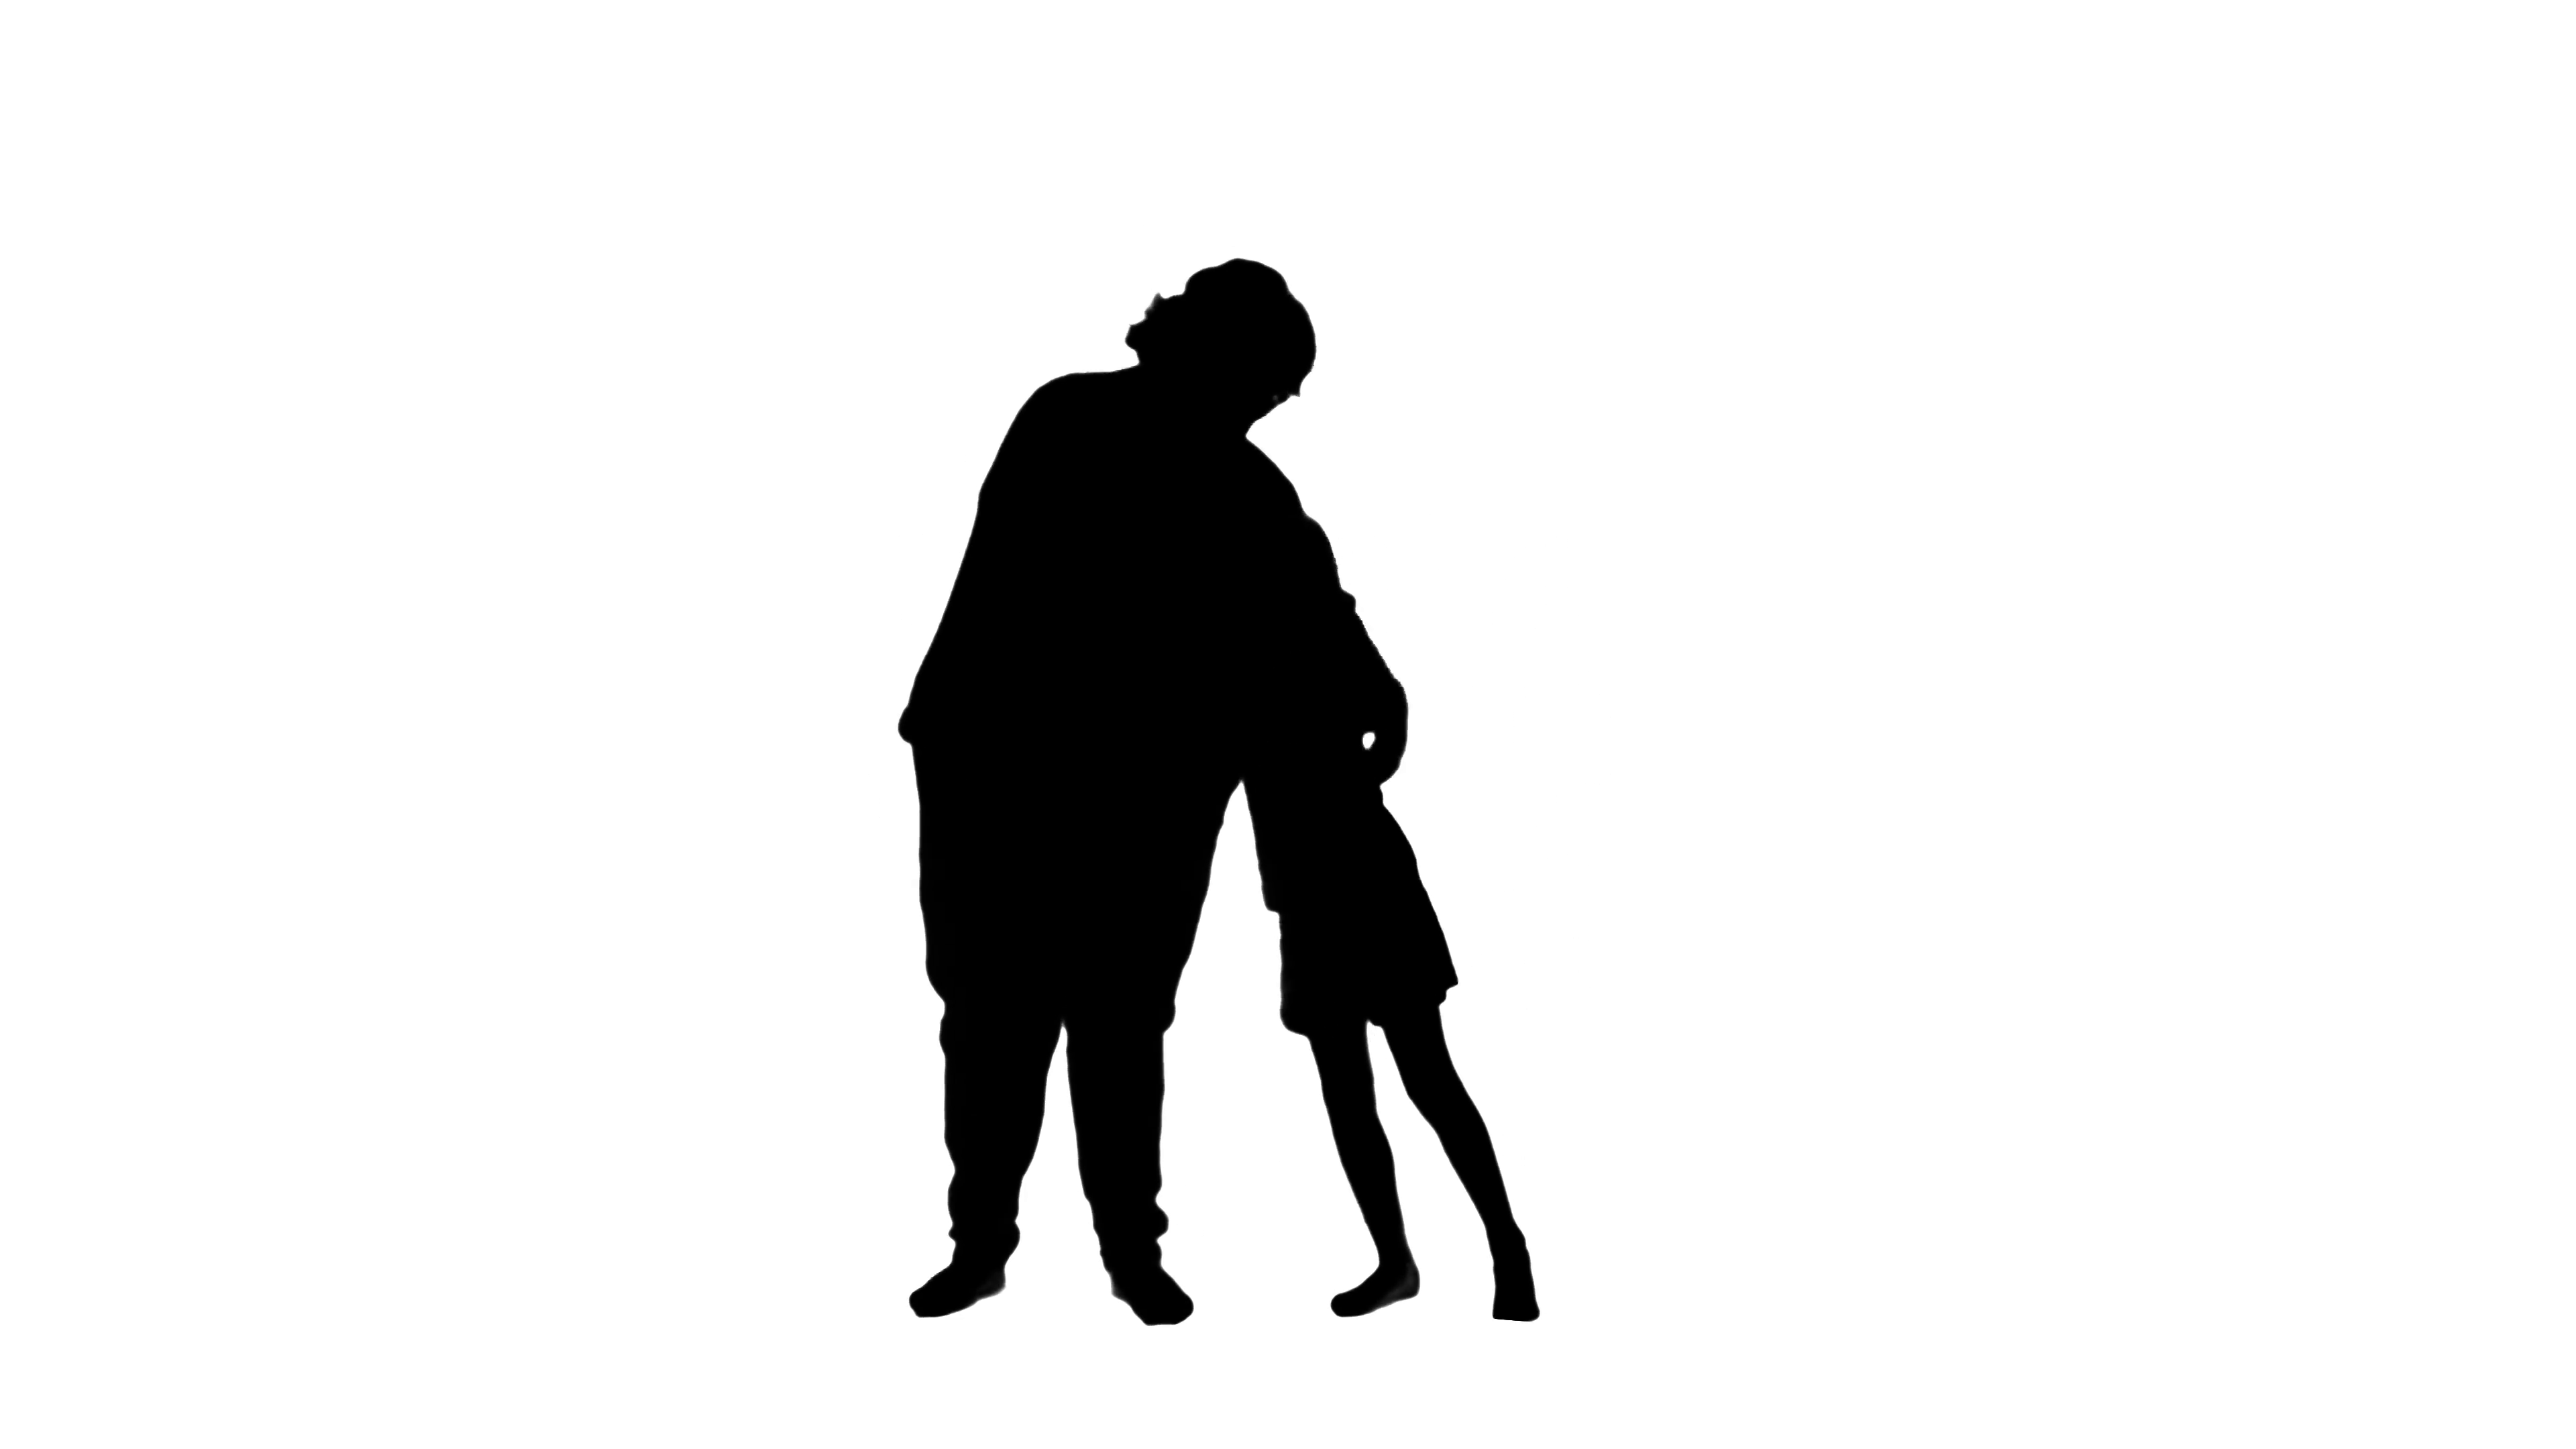 Hugging Silhouette